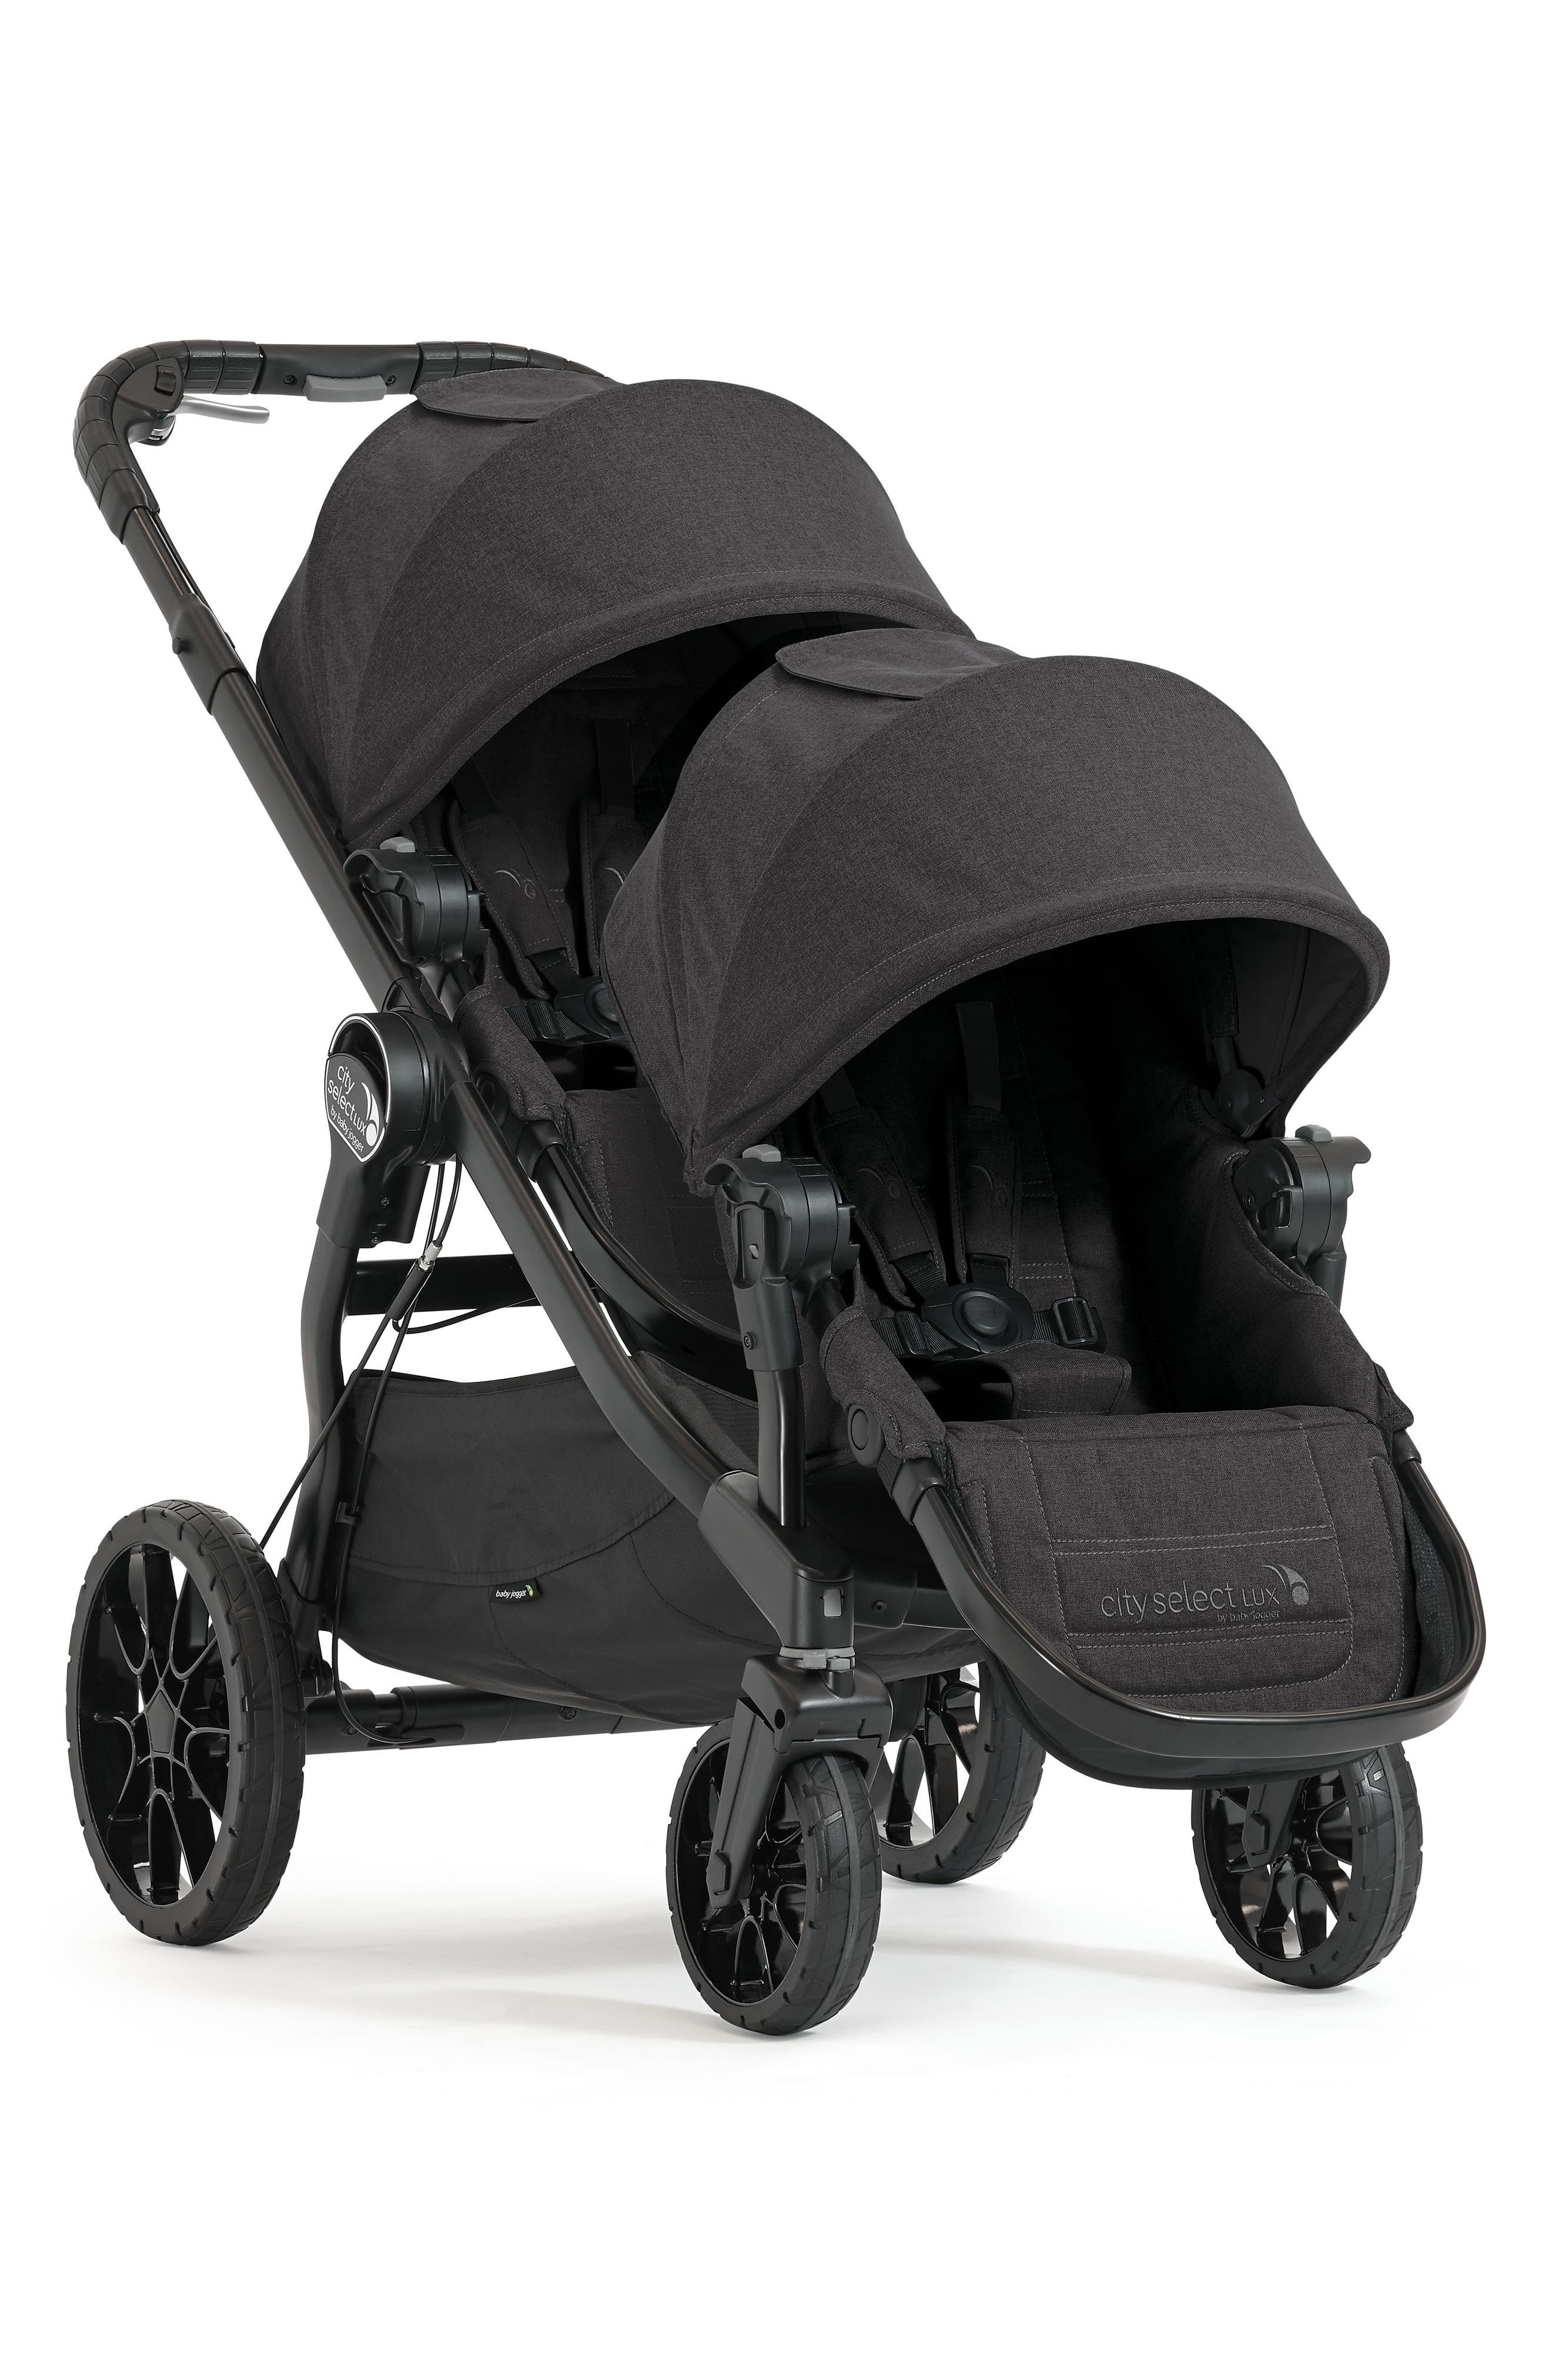 City Select<sup>®</sup> LUX Stroller with Second Seat,                         Main,                         color, 001